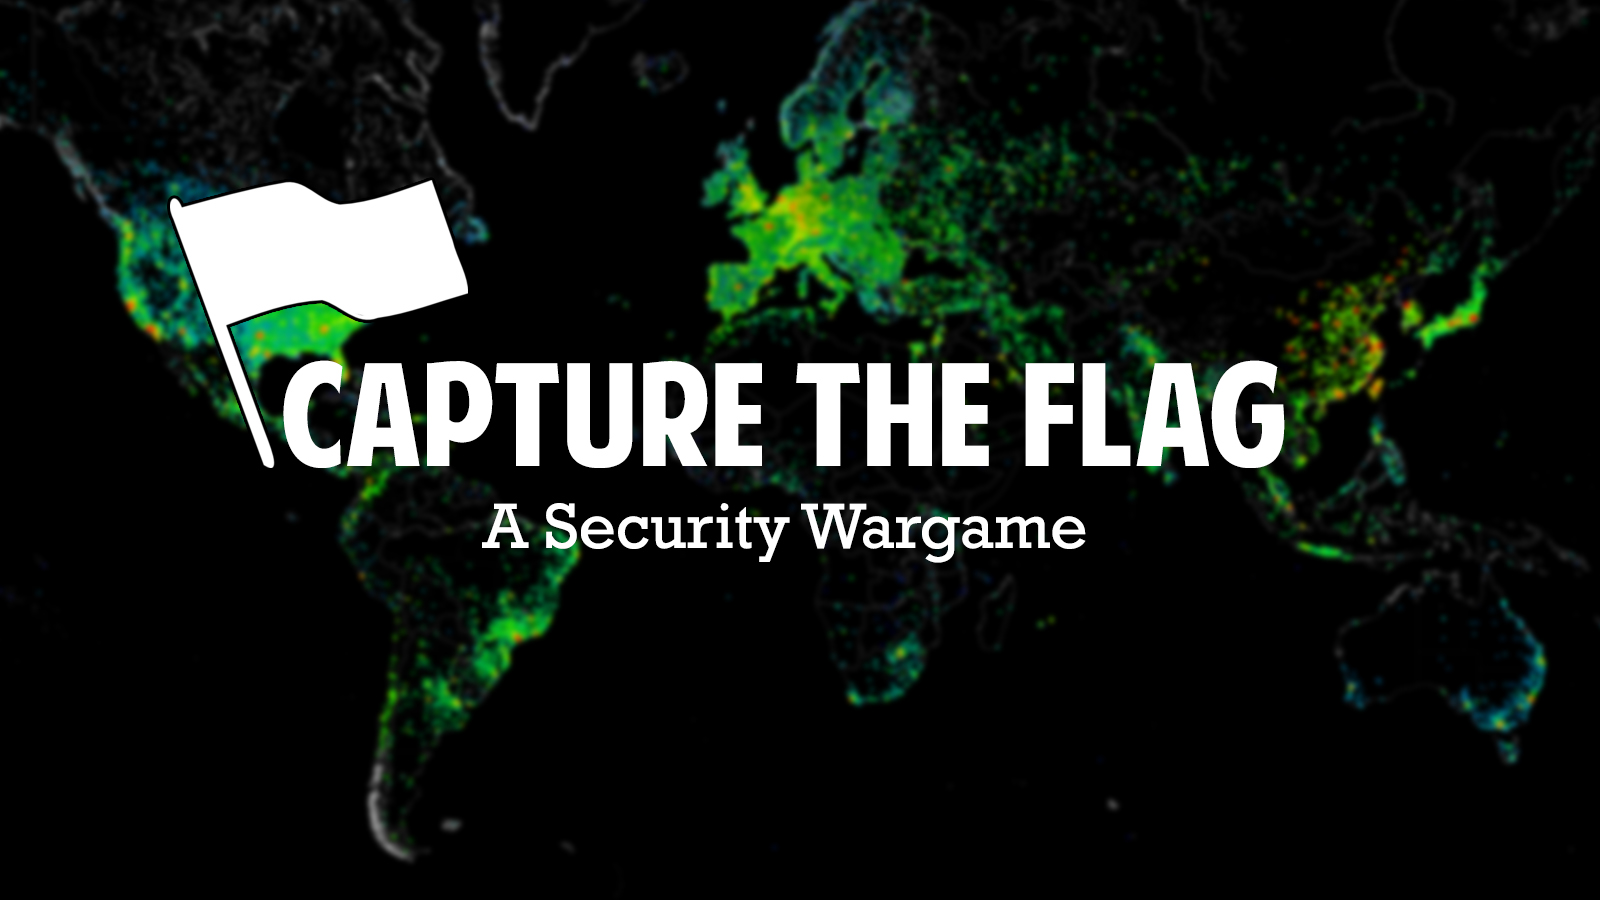 Capture The Flag Security Wargame